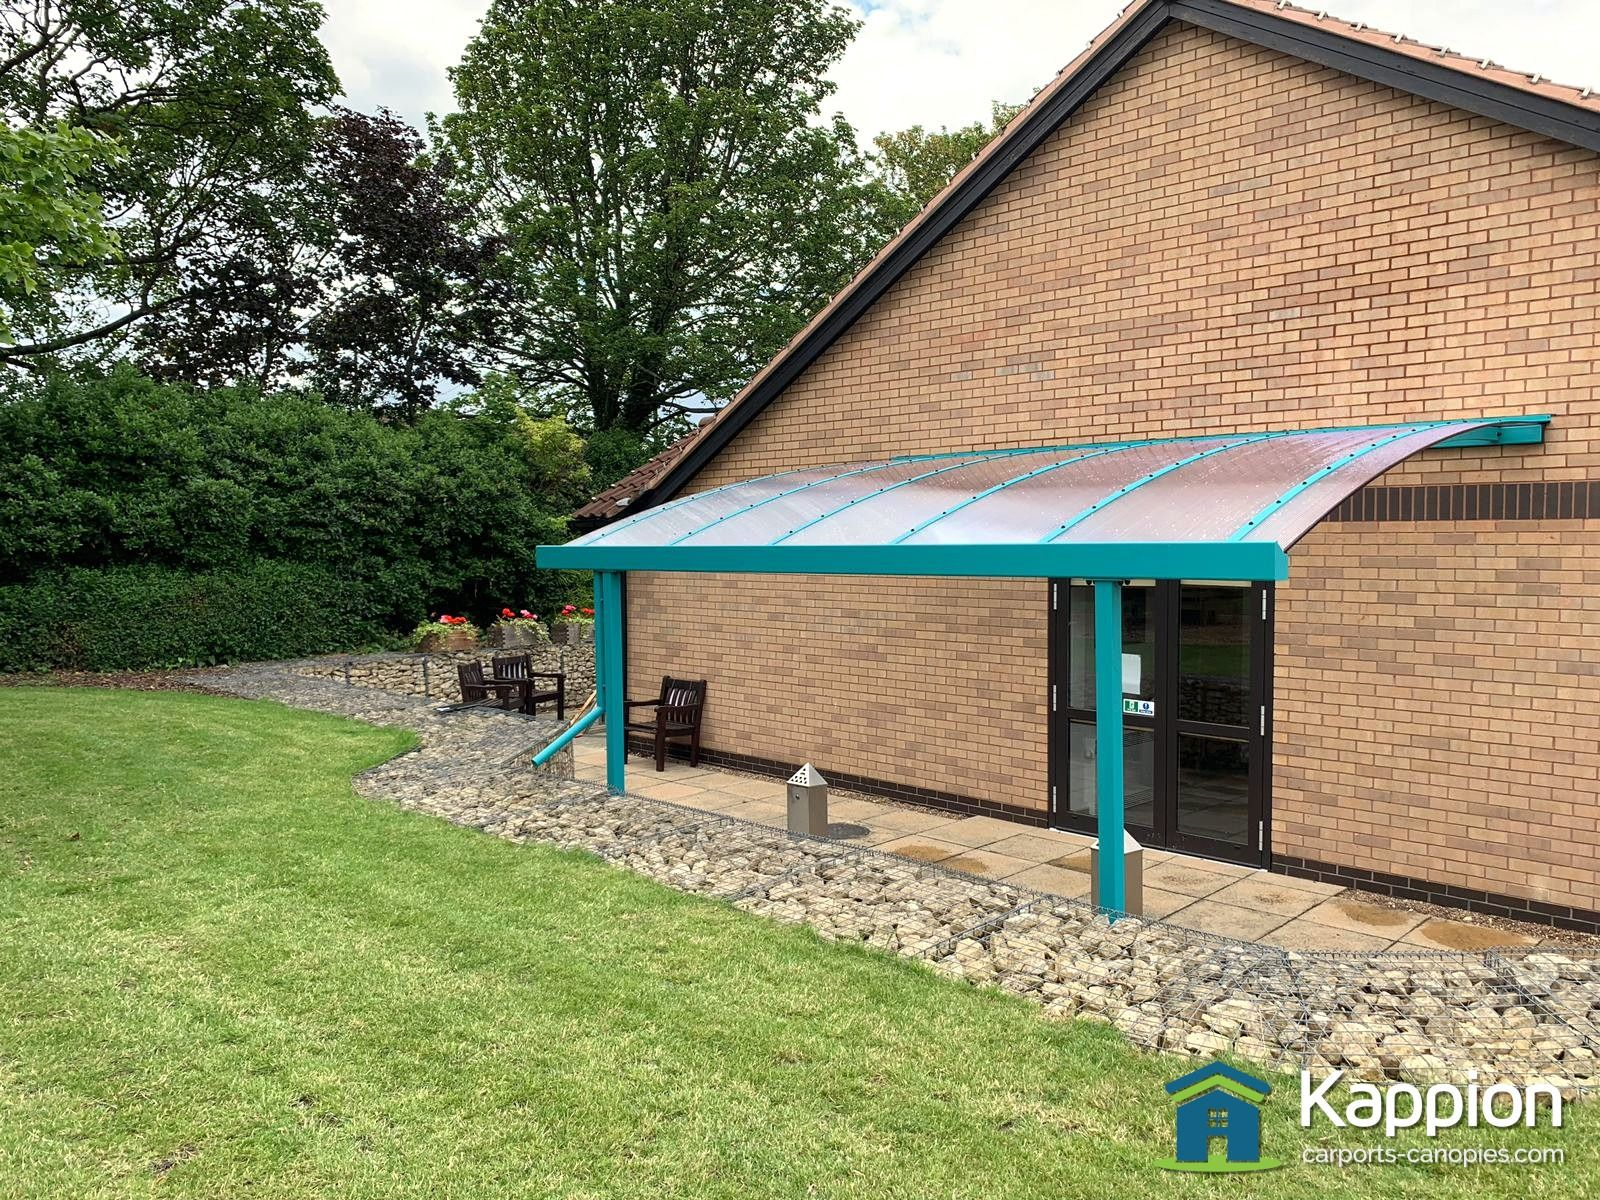 Nhs Garden Patio Canopy Installed In Doncaster With Images Patio Canopy Patio Garden Patio